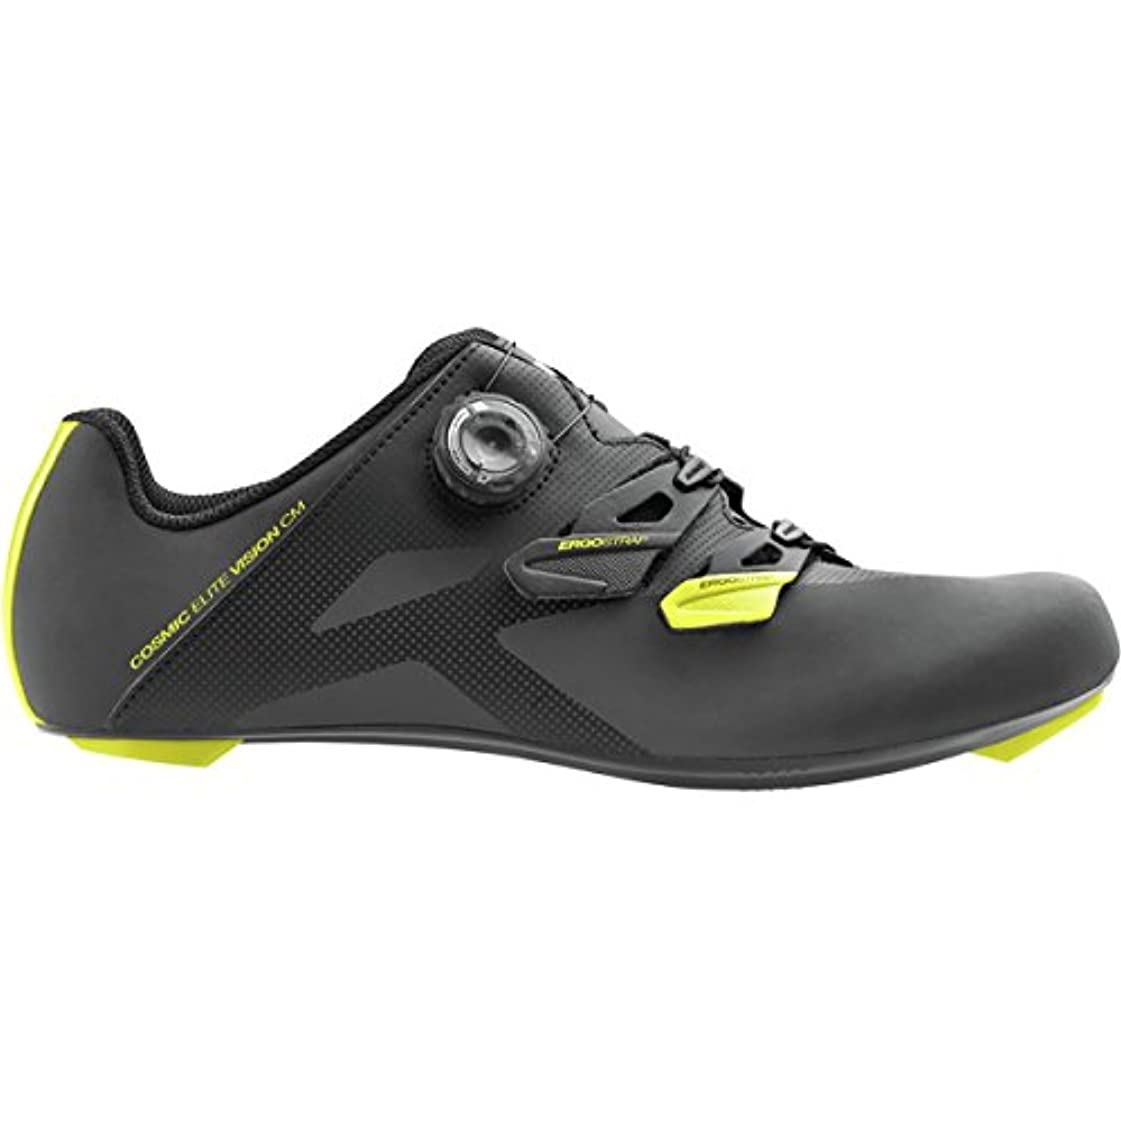 おじさん達成する器官Mavic Cosmic EliteビジョンCM Shoe – Men 's Black/Yellow Mavic/ブラック、US 12.0 / UK 11.5